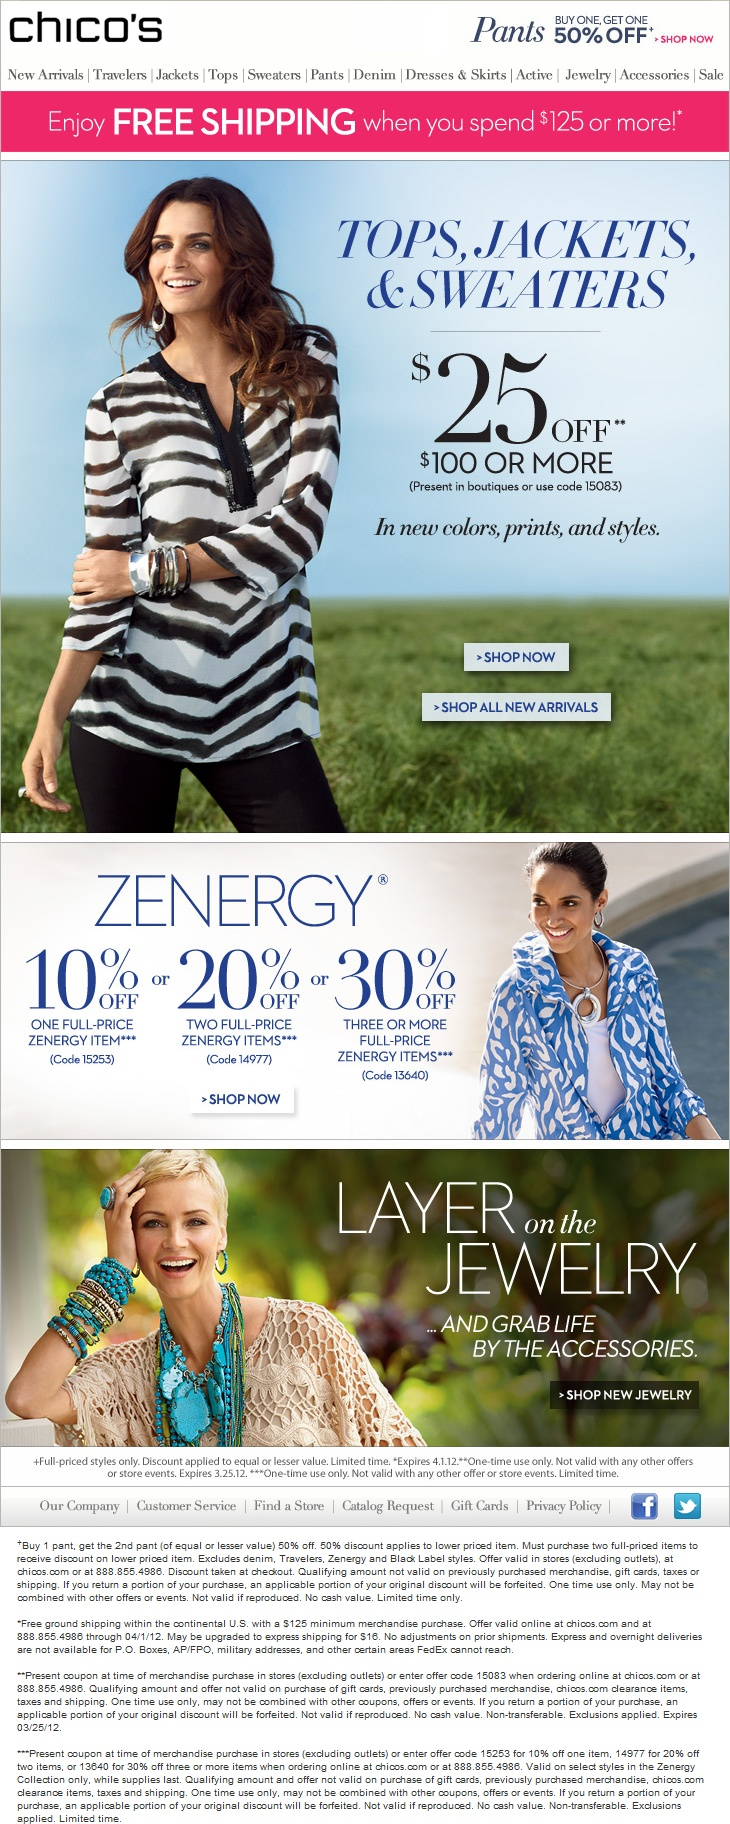 Chicos 25 off 100 printable coupon save 25 off purchase of 100